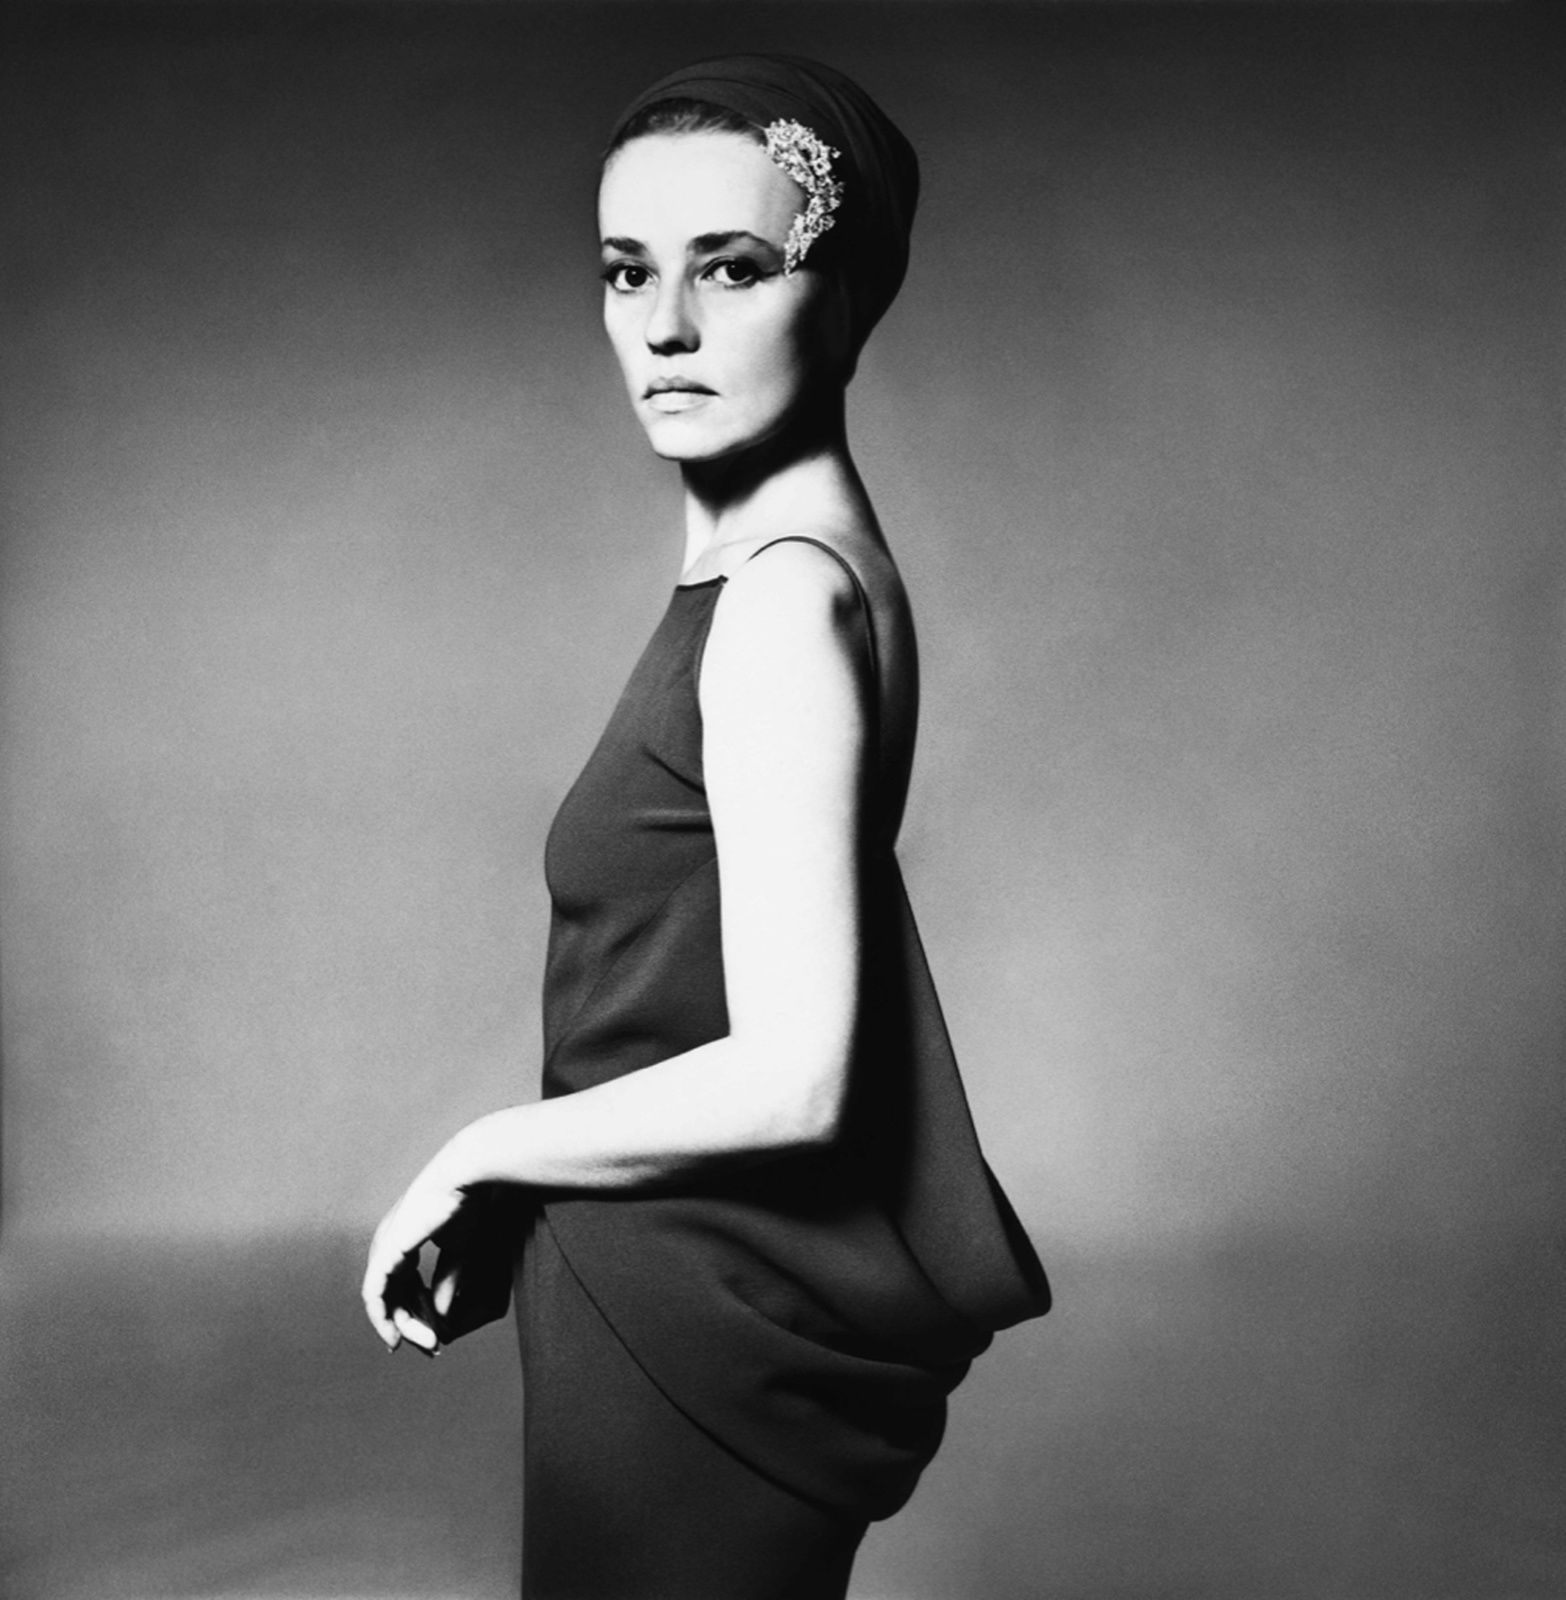 """Jeanne MOREAU"" de Richard AVEDON - Courtesy Fondation Avedon"